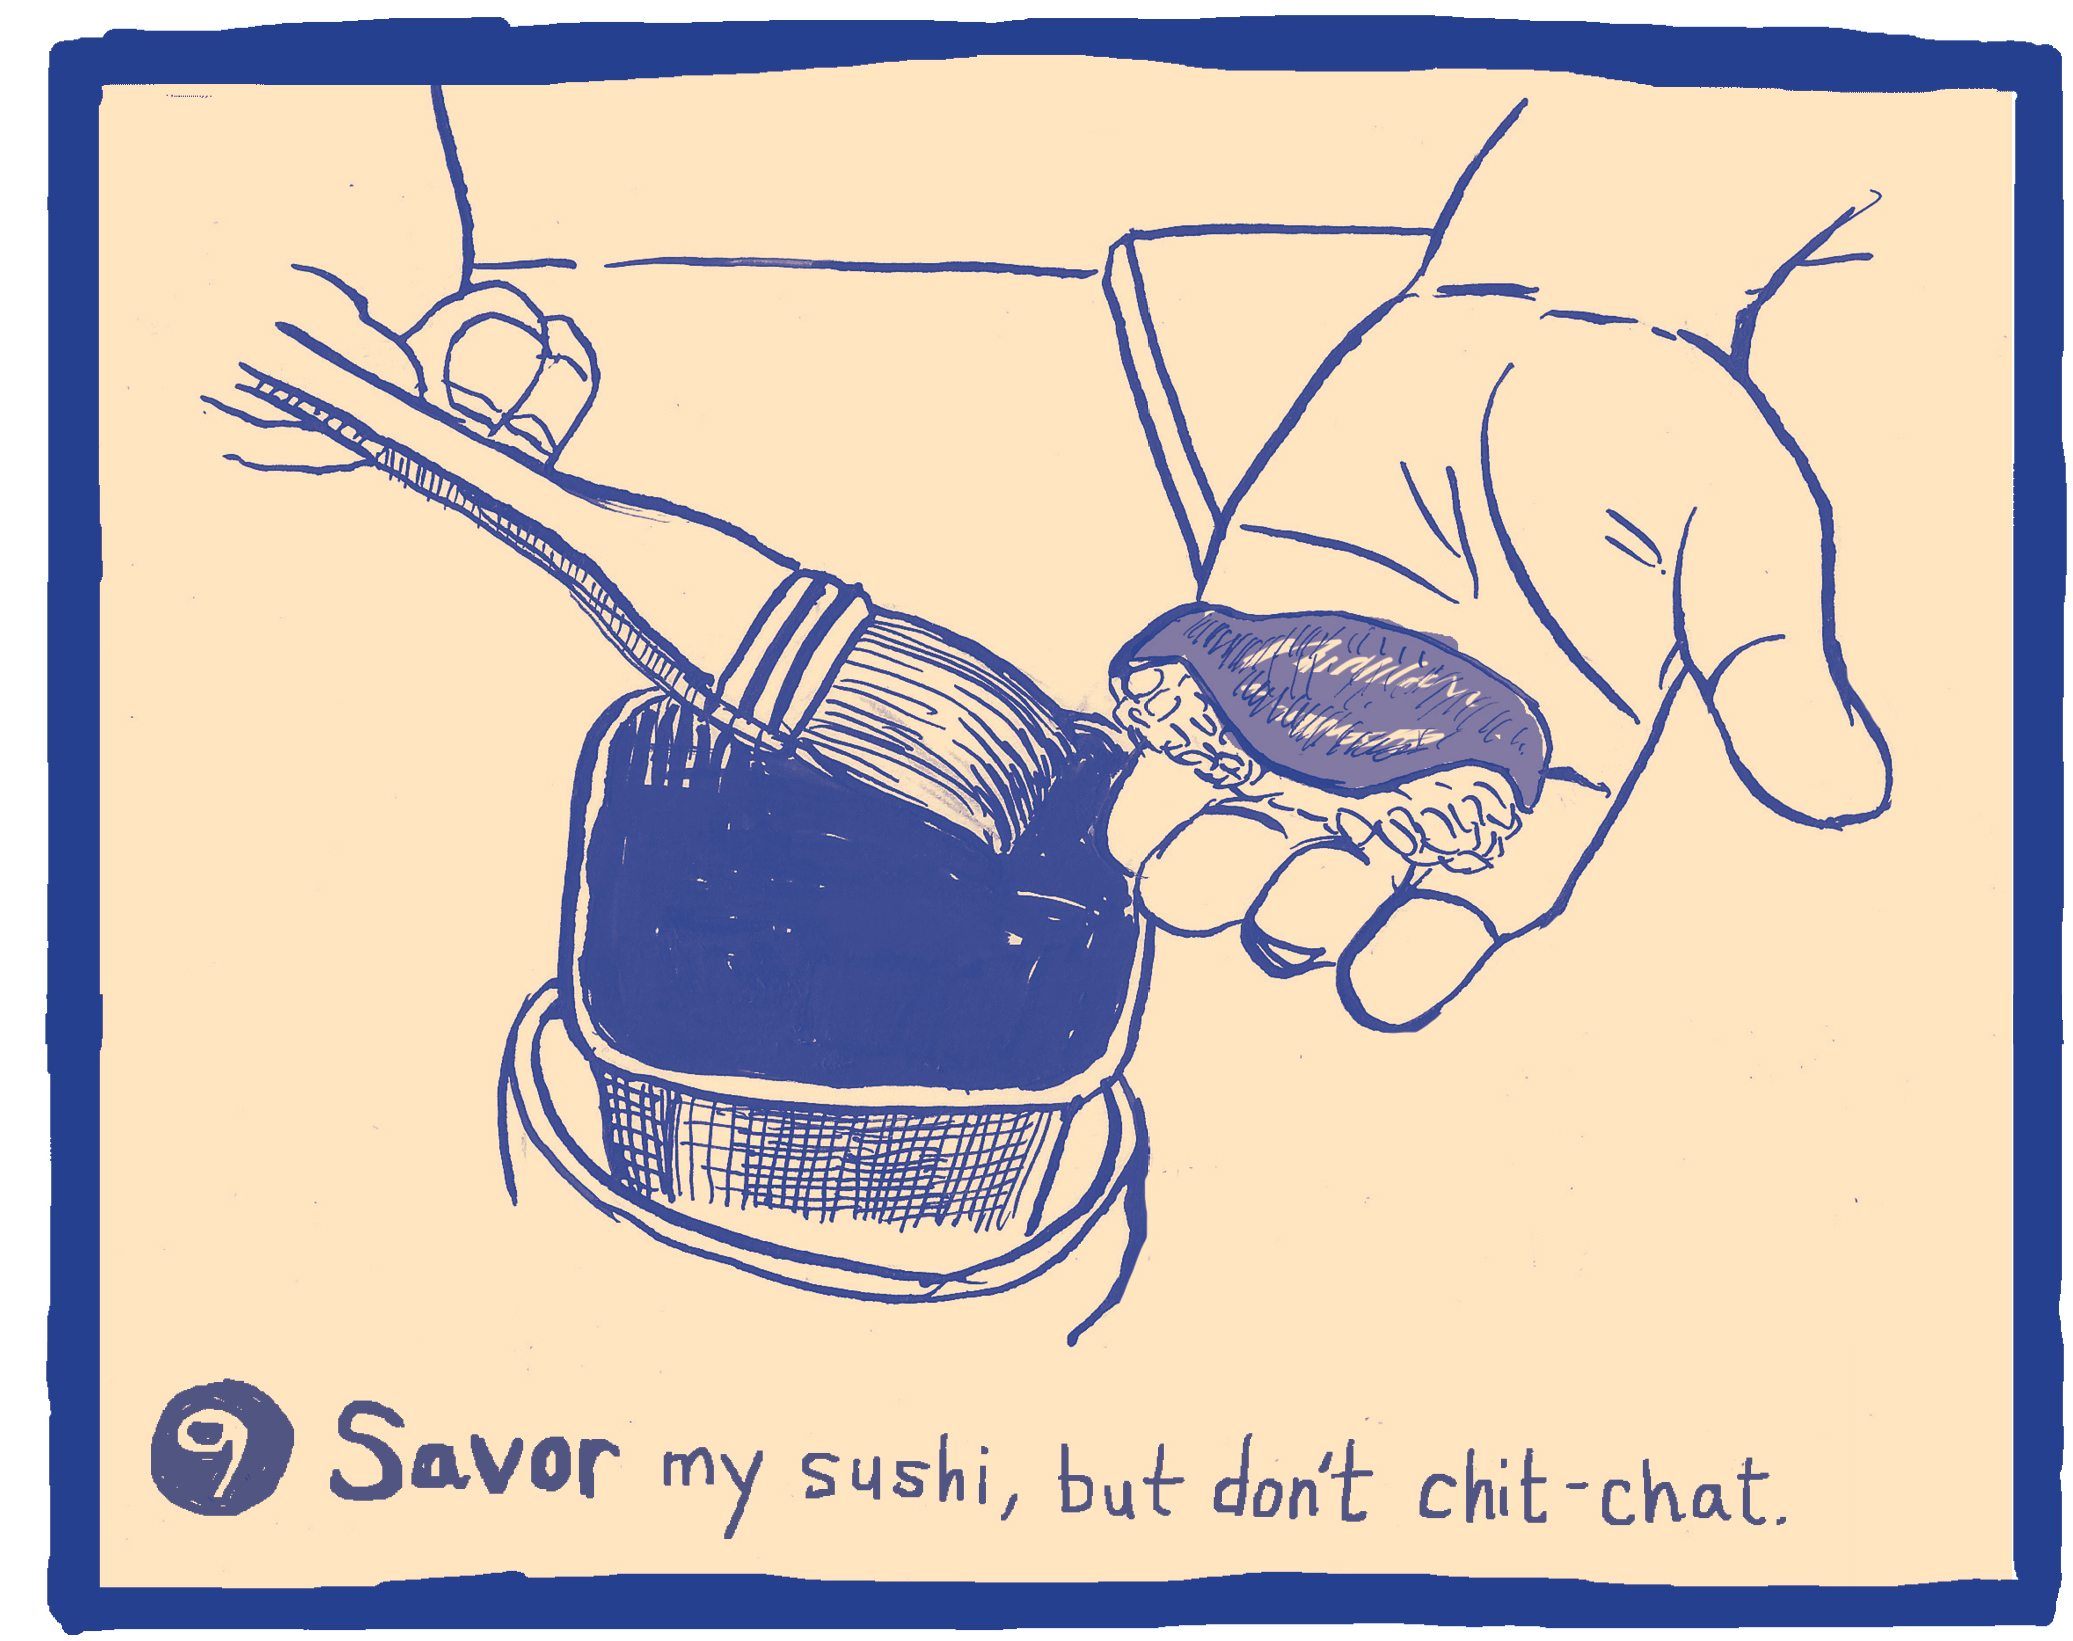 The Ten Commandments of Sushi #9